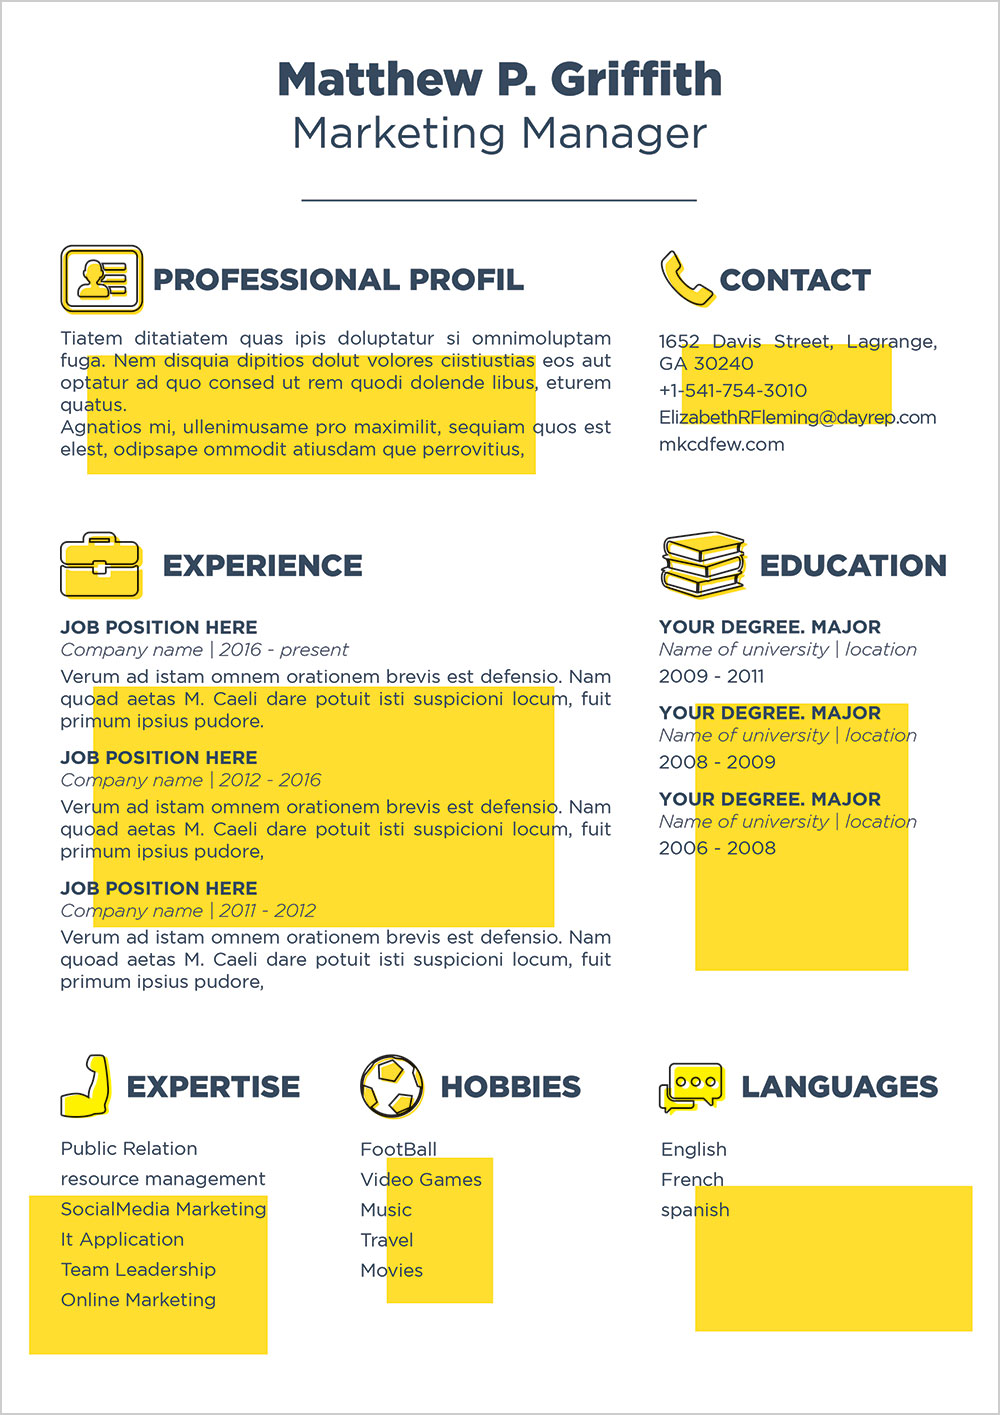 Free-Resume-CV-Template-&-Cover-Letter-in-Word-PSD-INDD-&-Ai-for-Marketing-Manager (4)